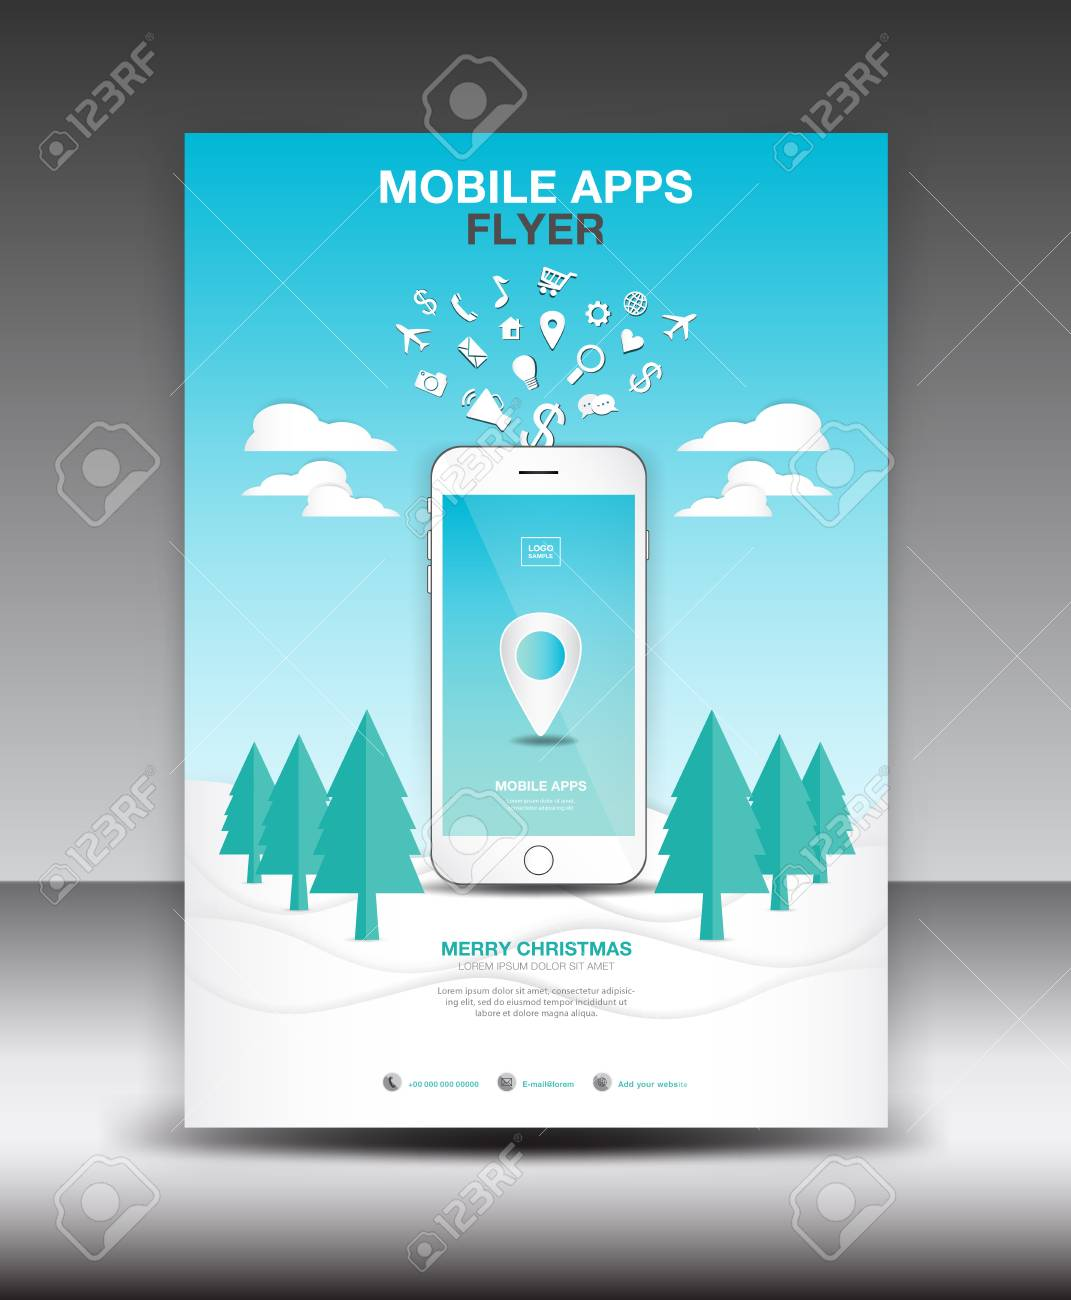 Mobile apps flyer template business brochure flyer design layout mobile apps flyer template business brochure flyer design layout smartphone icons mockup application wajeb Gallery